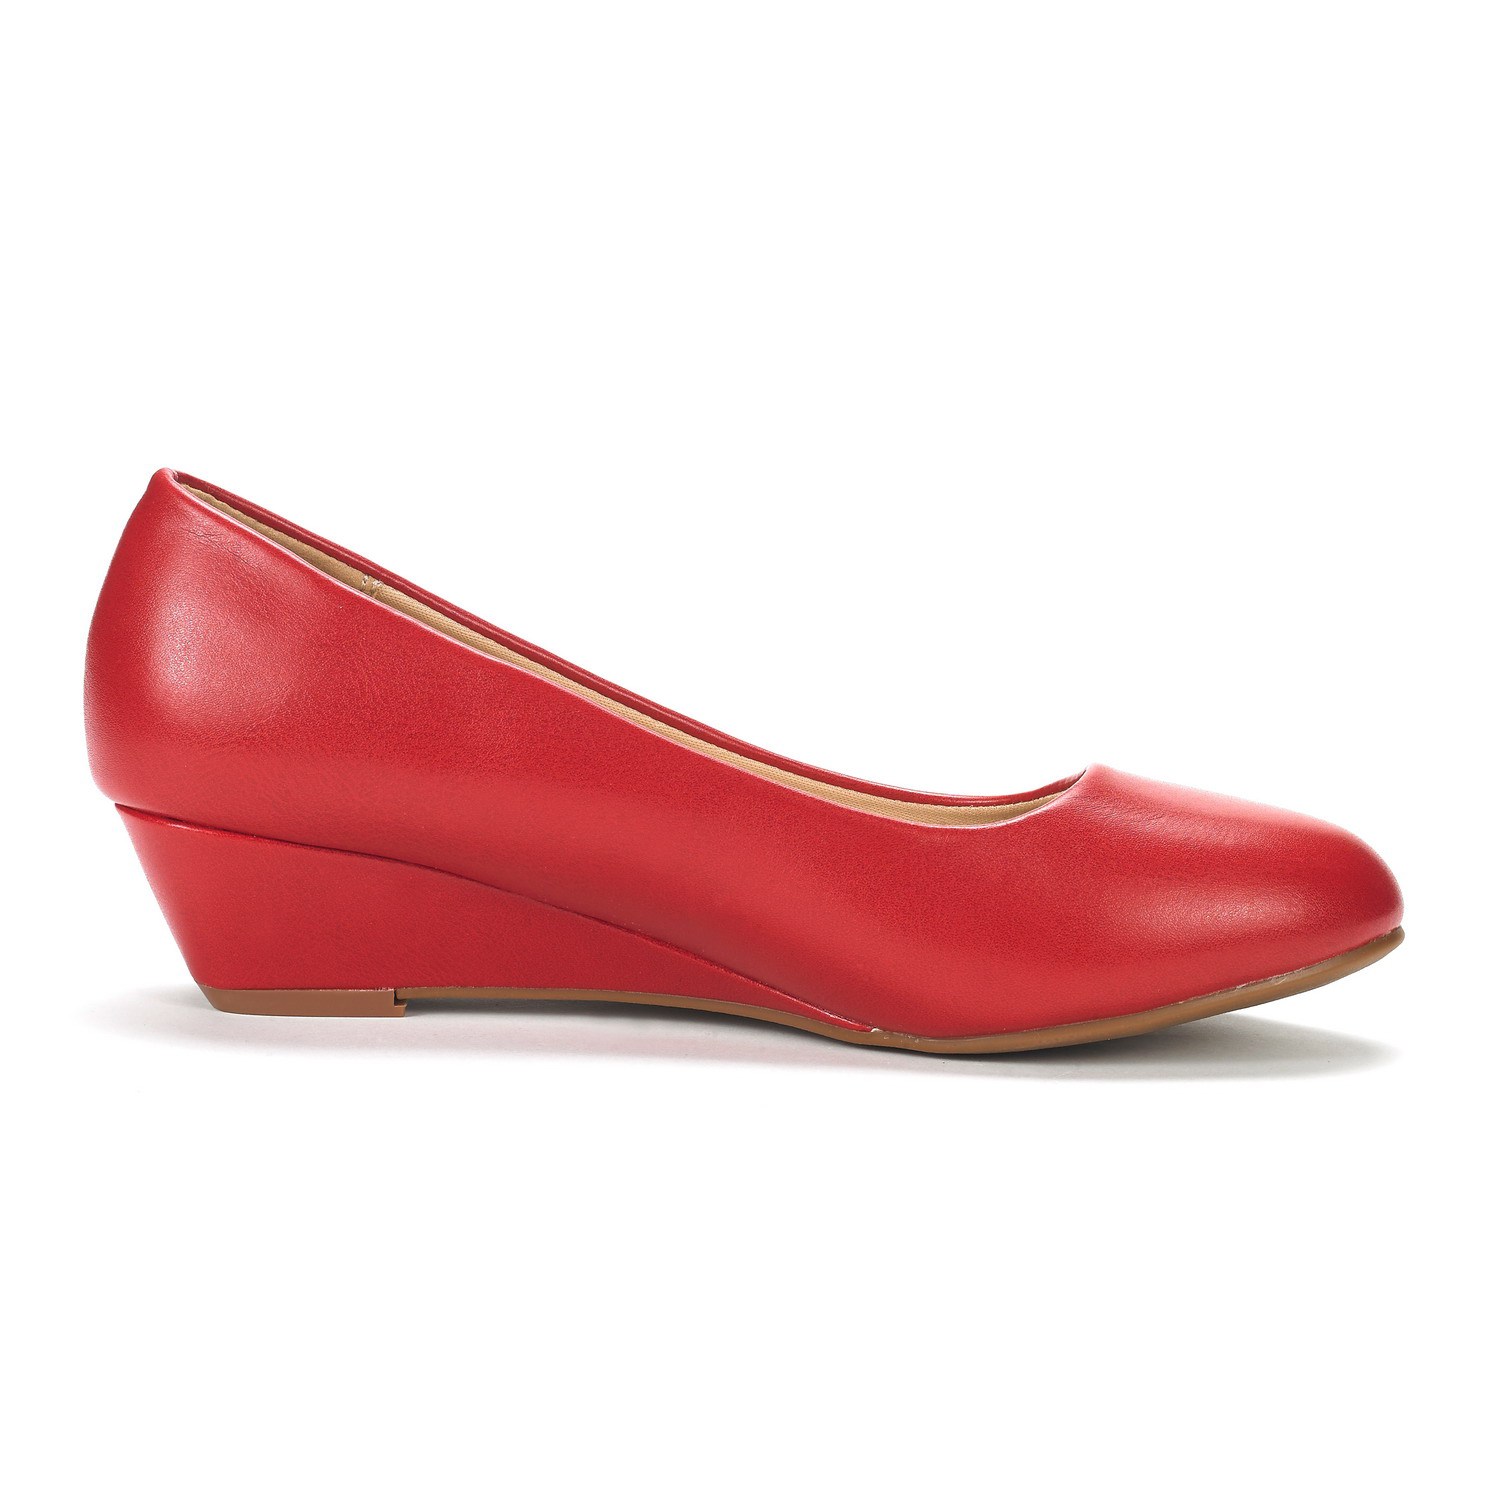 DREAM-PAIRS-Women-039-s-Mid-Wedge-Heel-Shoes-Slip-On-Comfort-Dress-Shoes-Suede-PU thumbnail 17